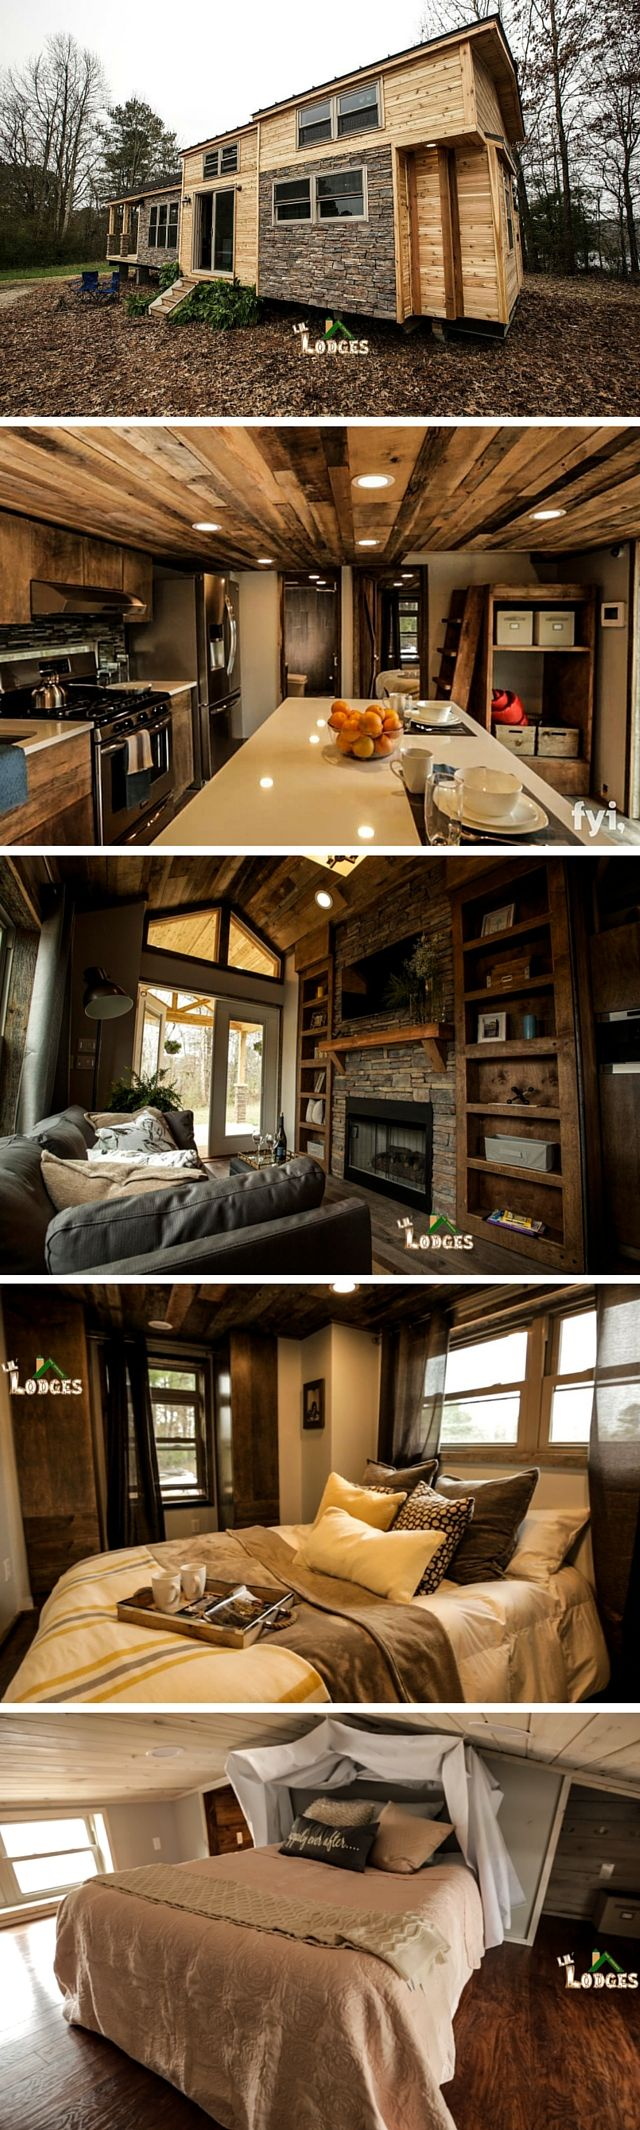 Tiny houses on pinterest - A Tiny House Retreat In Cobleskill Ny Built By Lil Lodge And Featured On